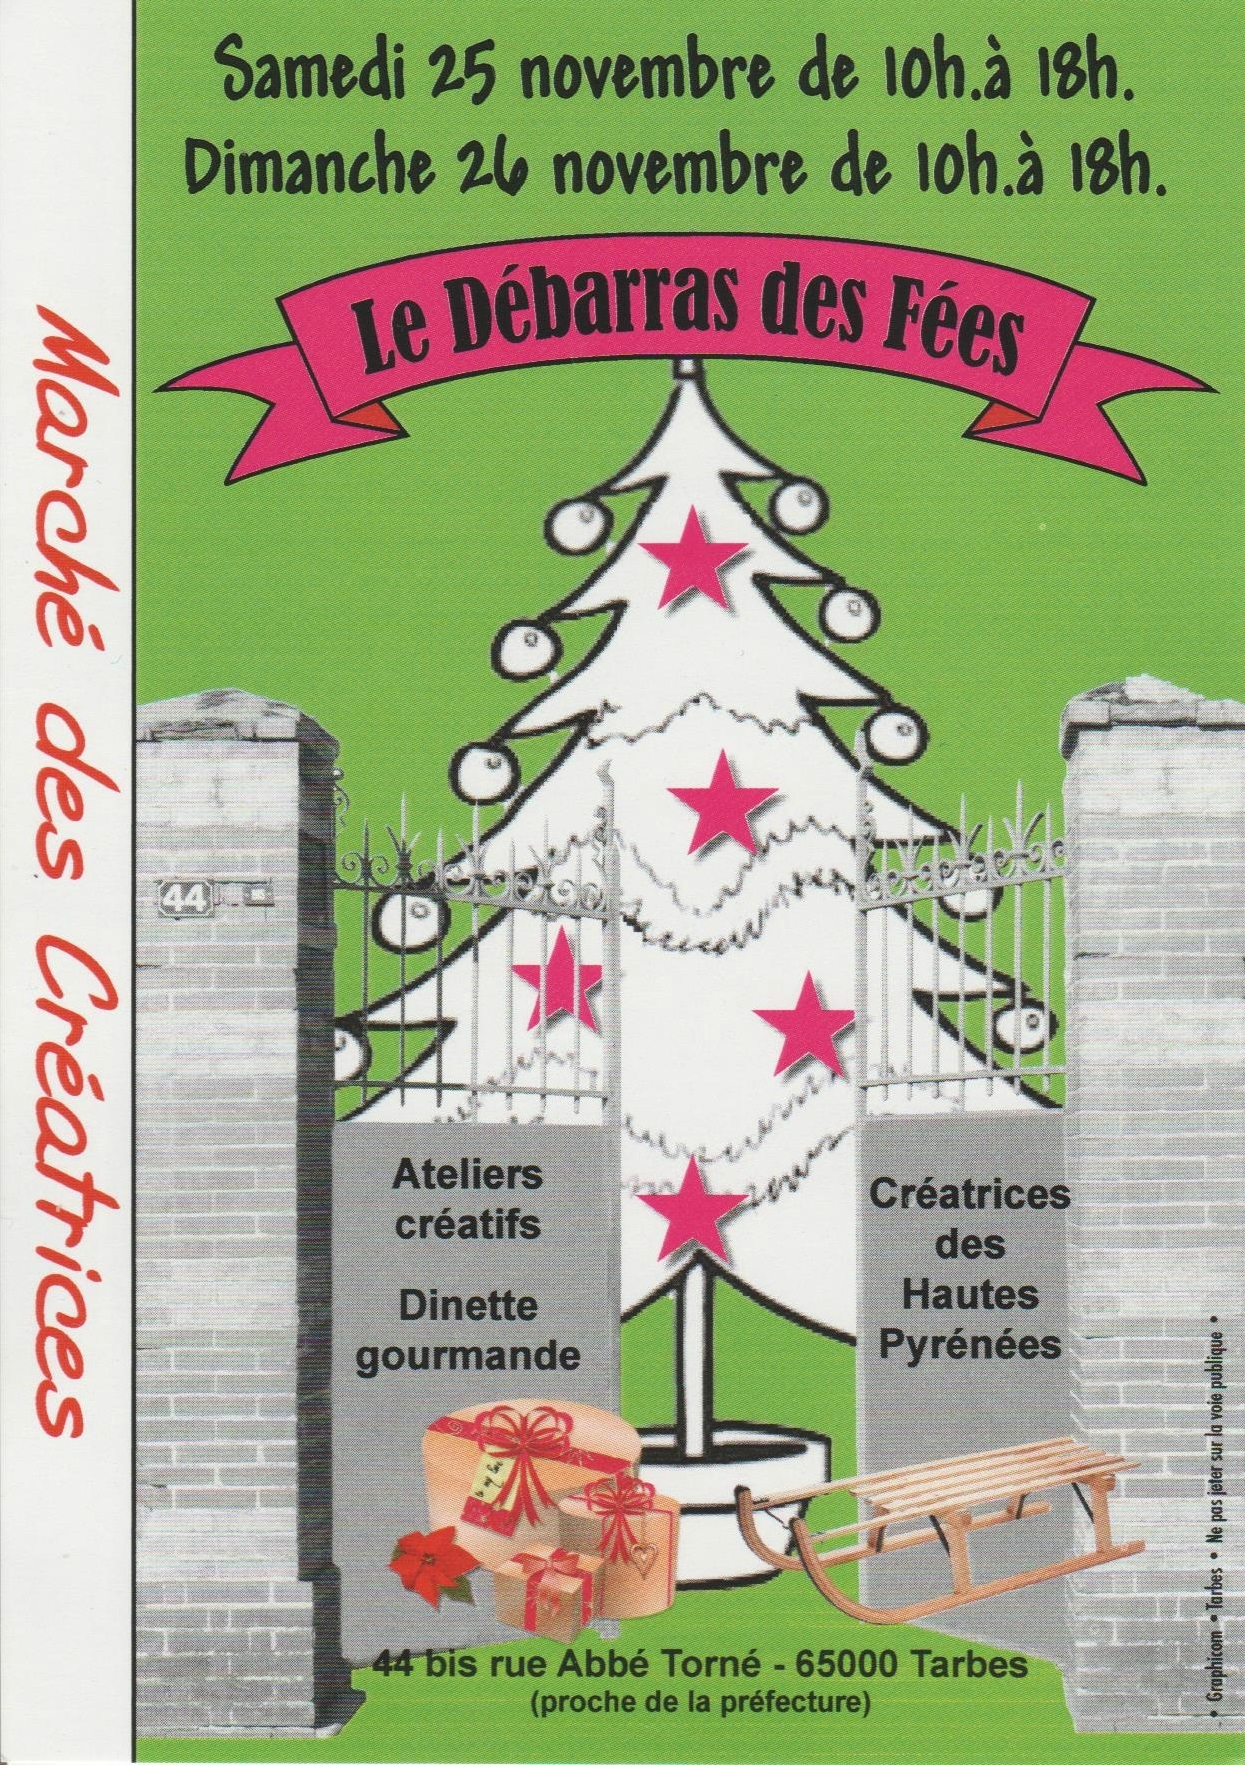 Image result for Marché de Noël debarras des fees à Tarbes (65)